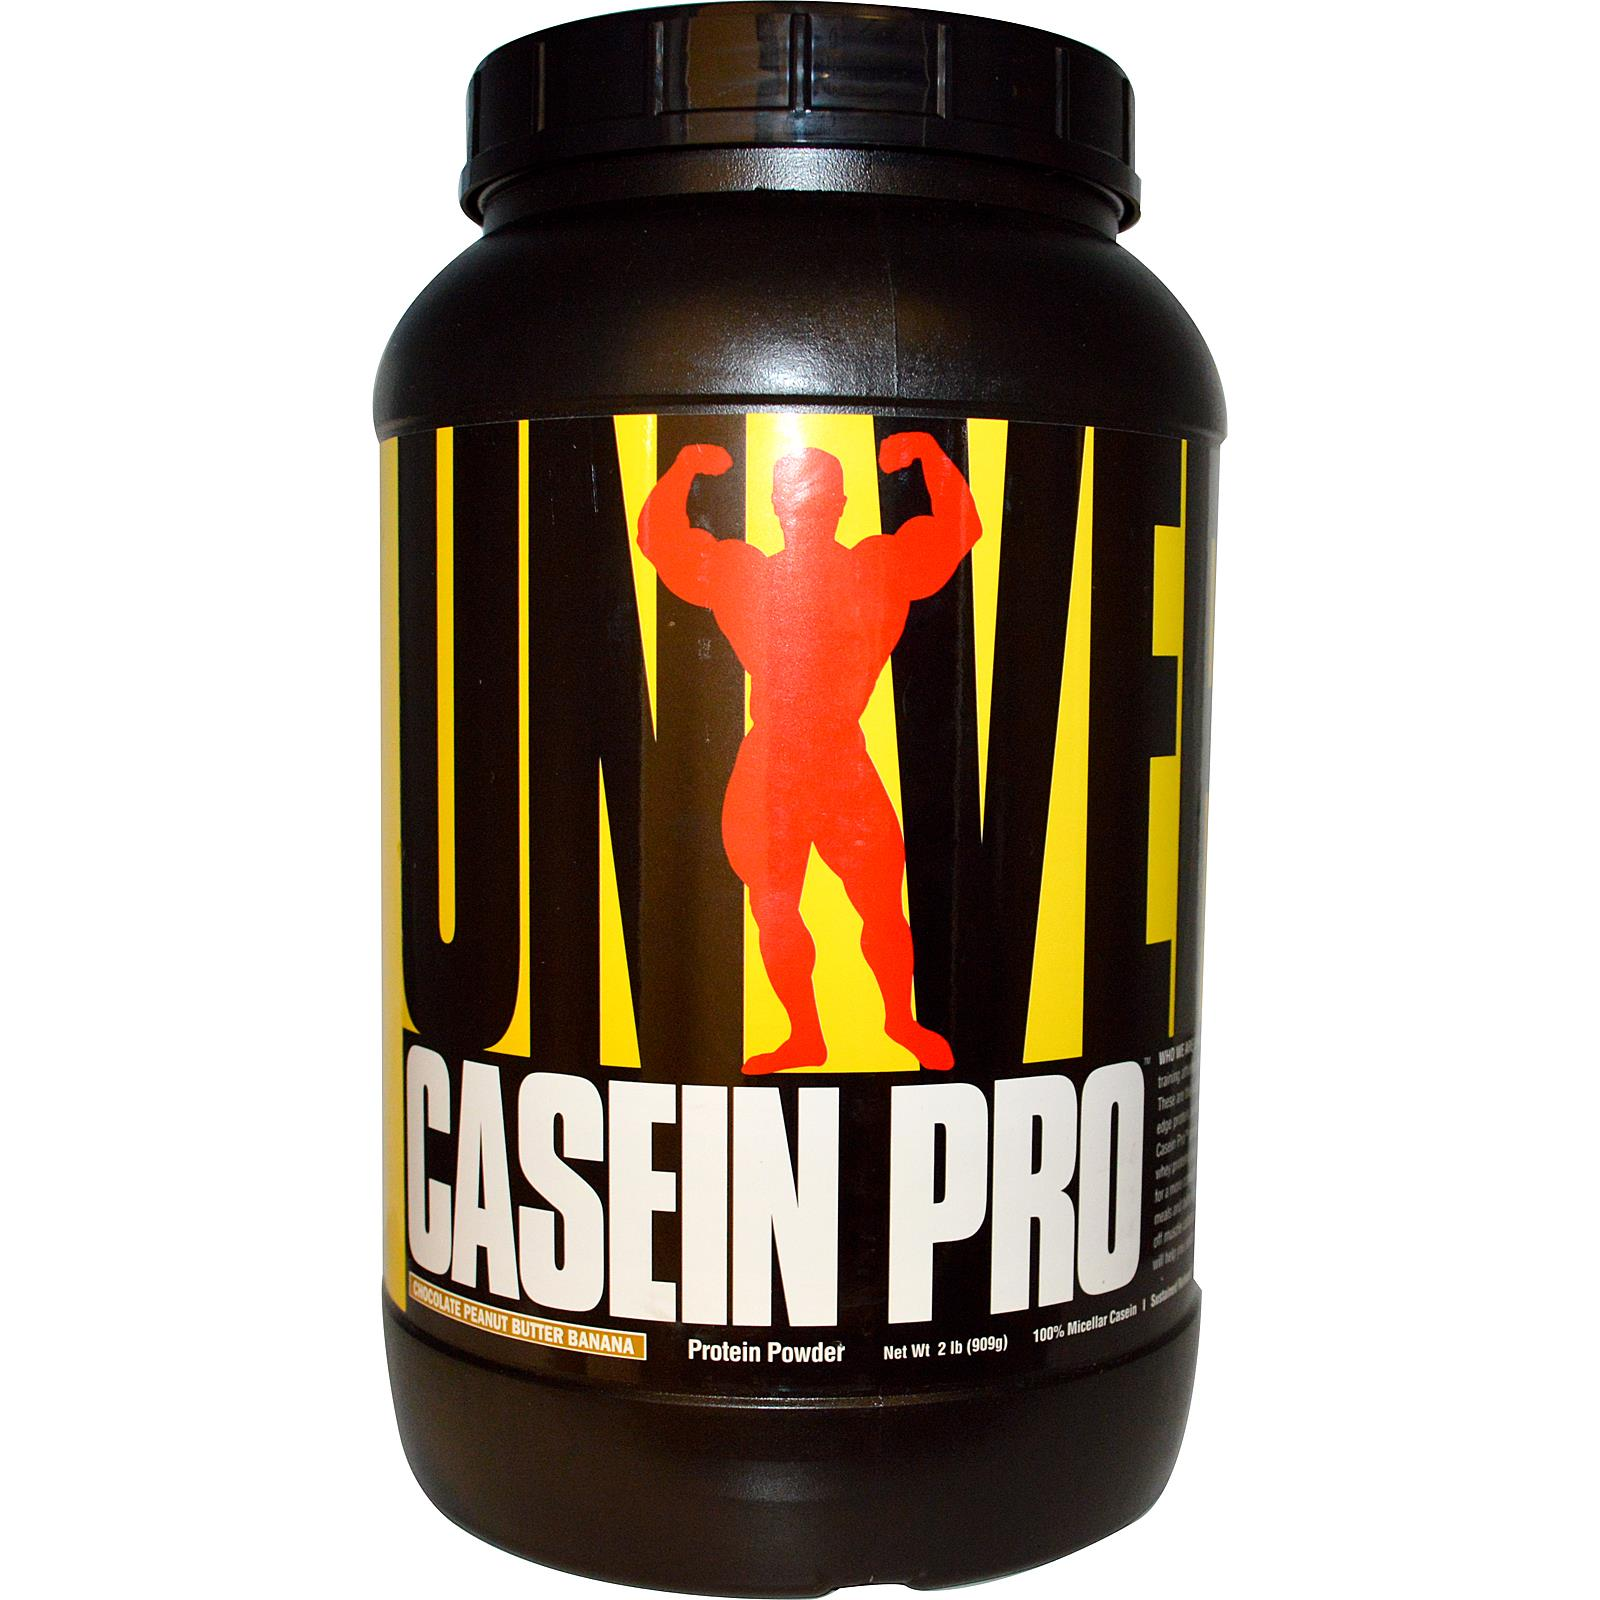 Casein Pro by Universal Nutrition, Chocolate Peanut Butter Banana 2lb